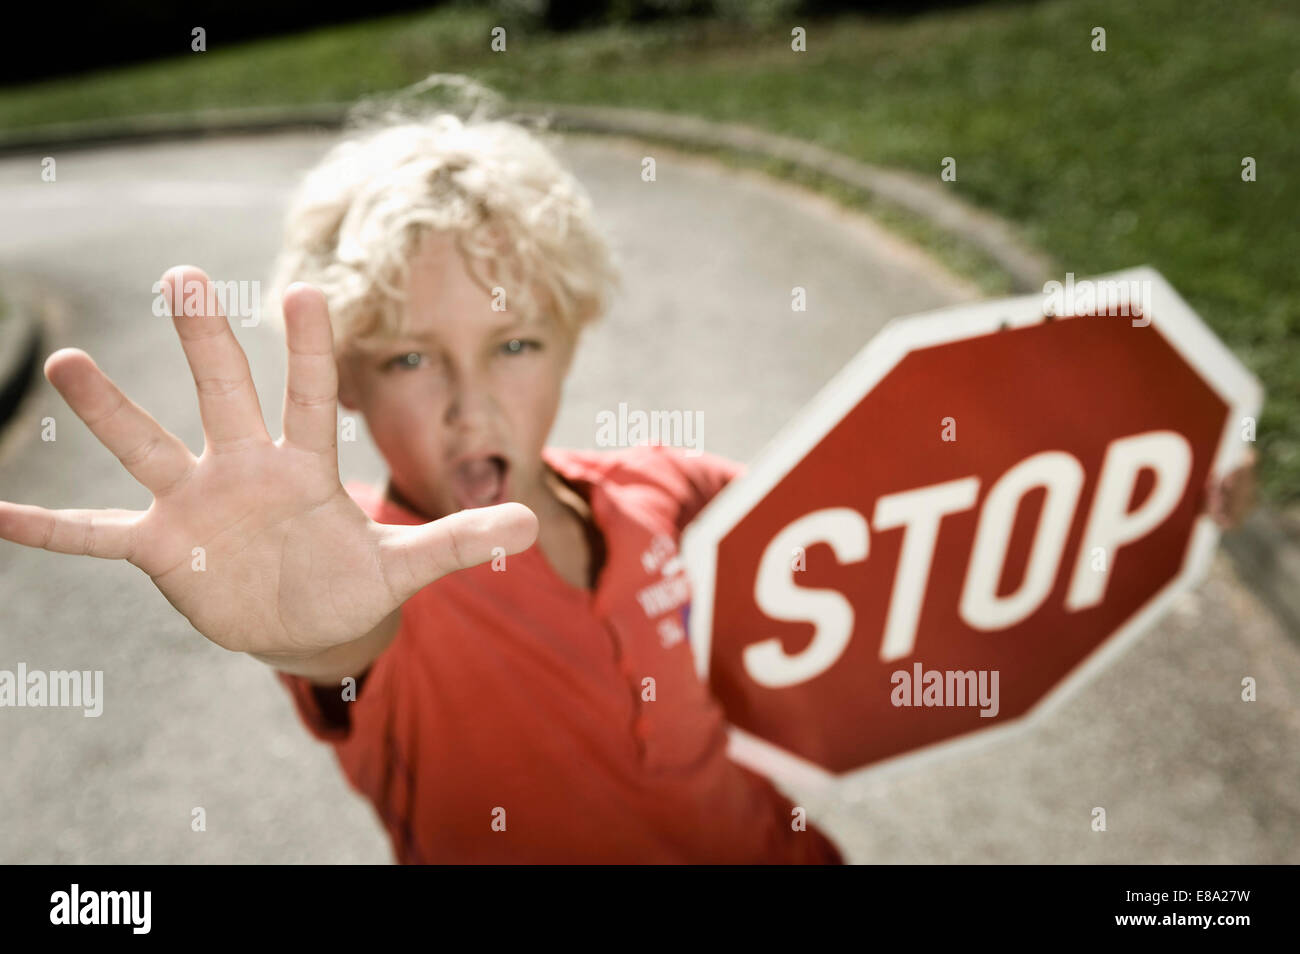 Boy on driver training area holding stop sign - Stock Image